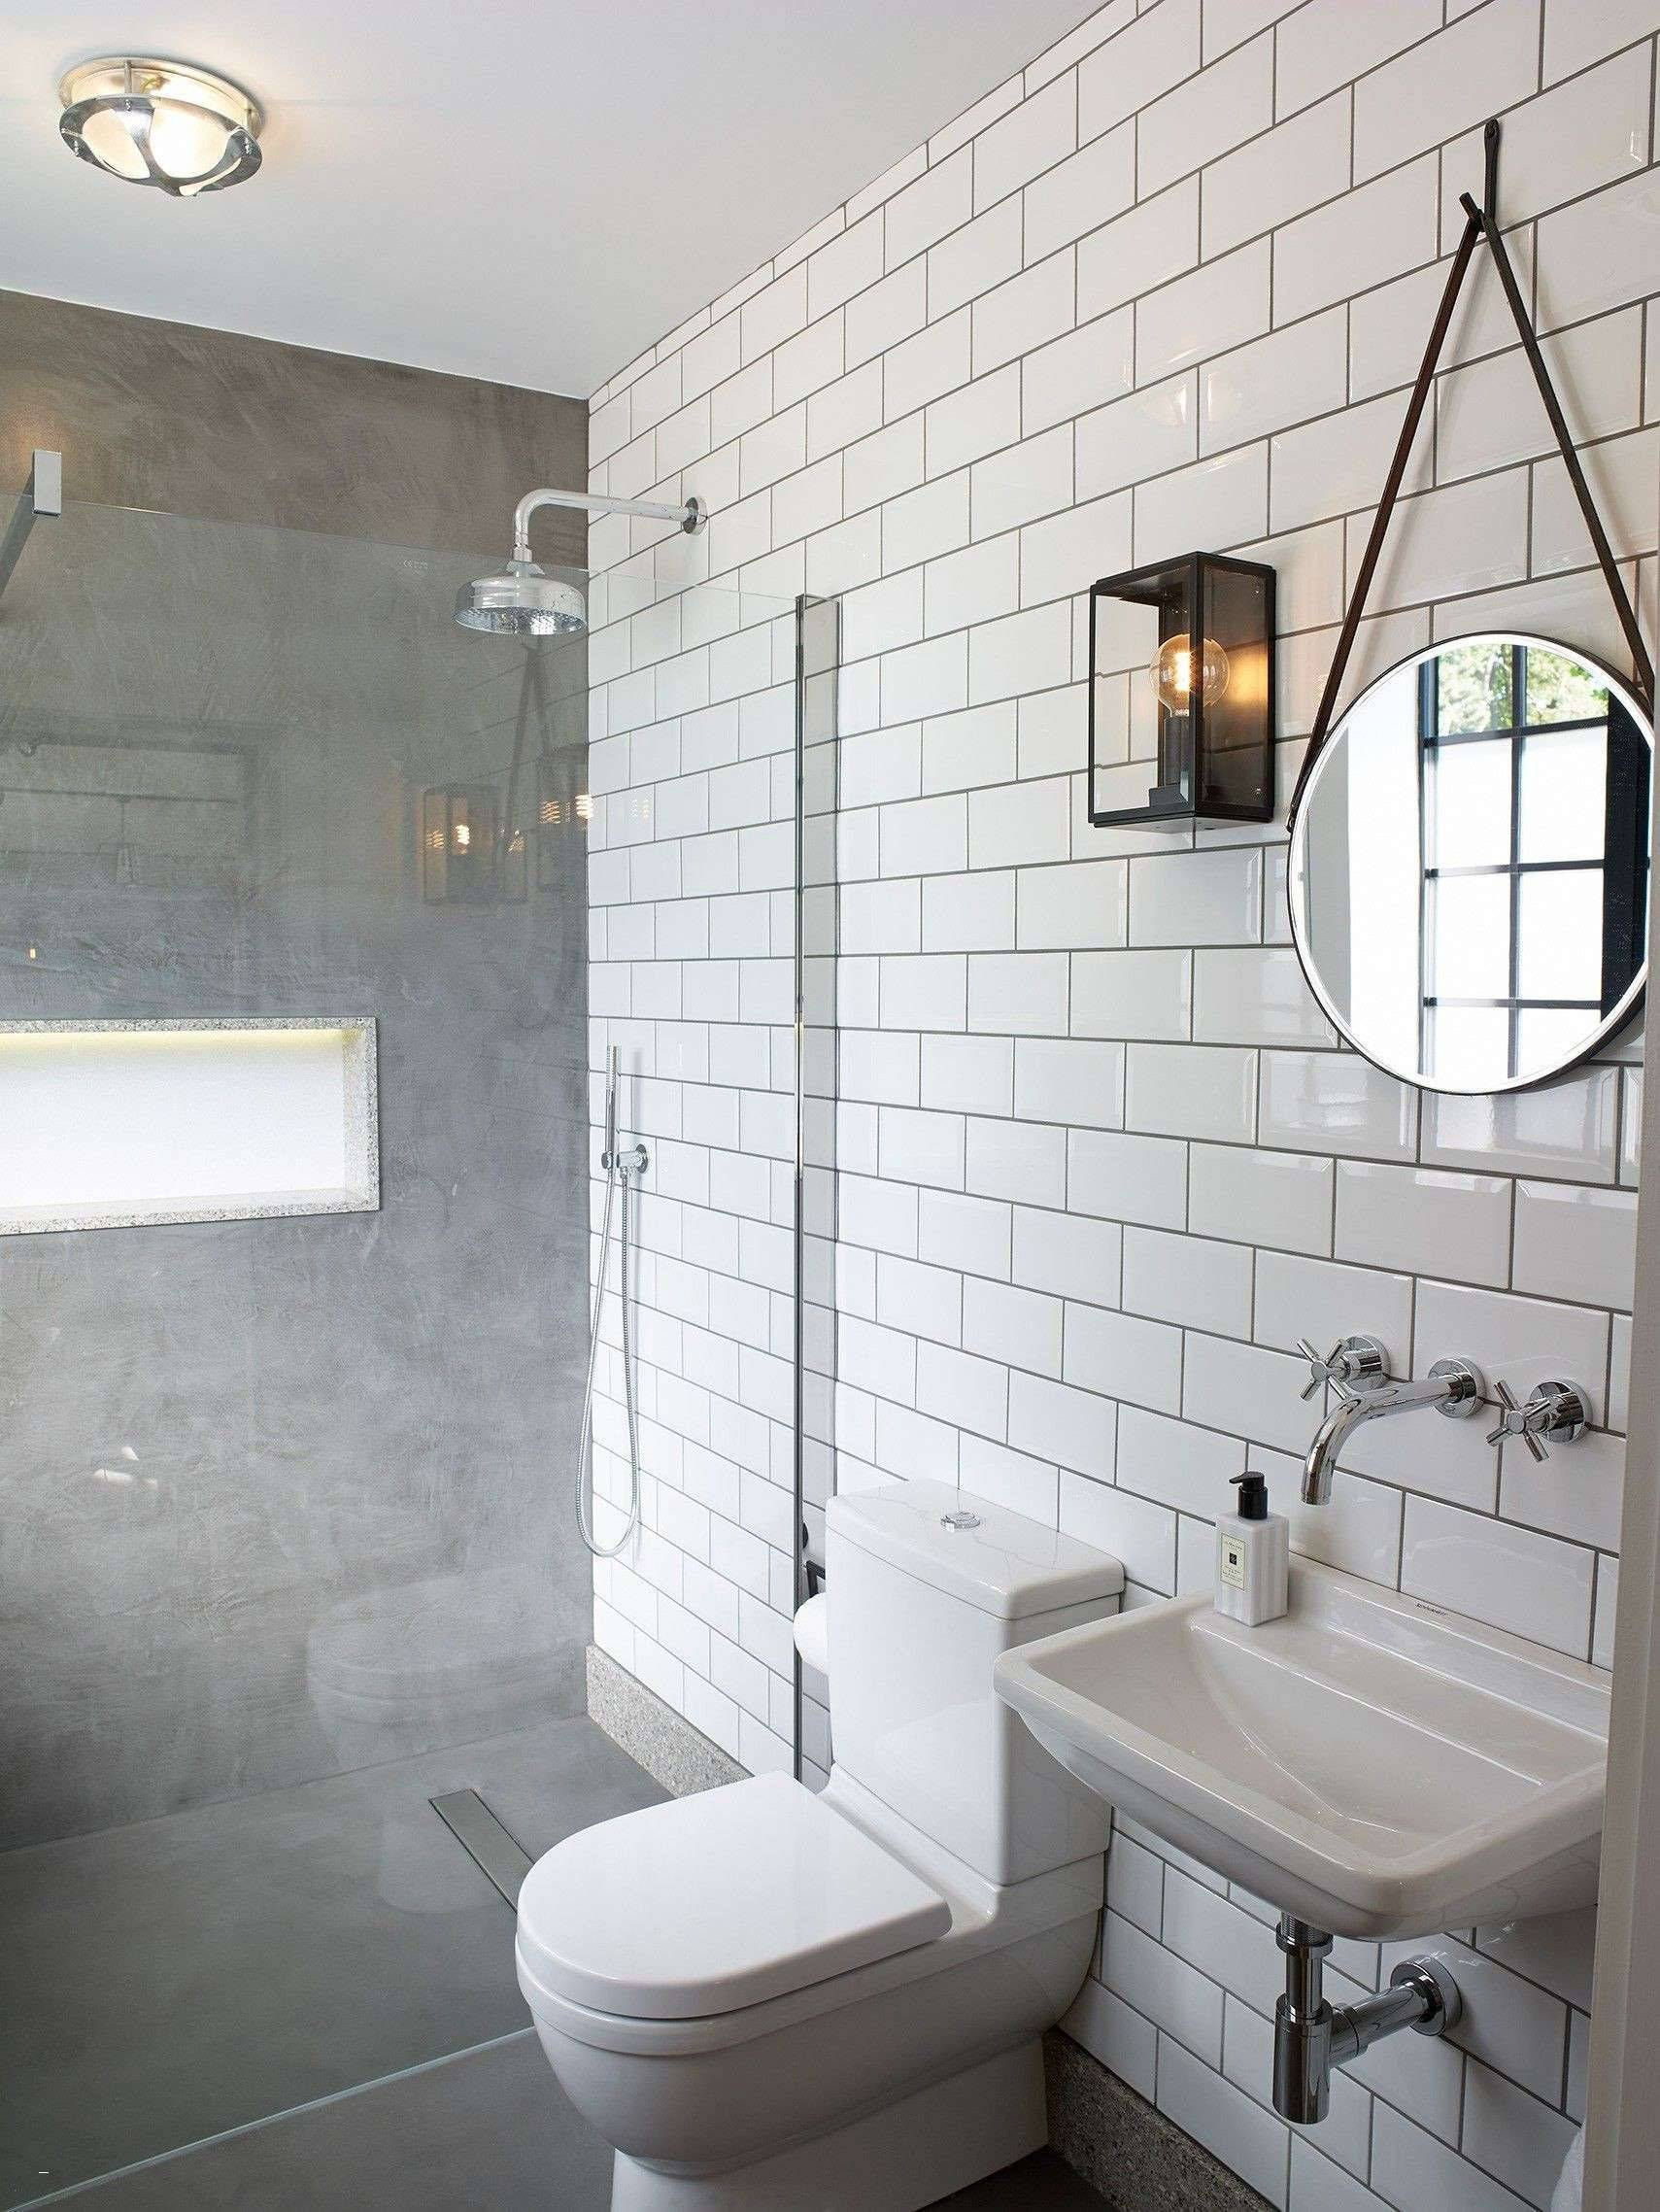 bathroom decor ideas colors schemes awesome elegant bathroom paint color binations baye of bathroom decor ideas colors schemes